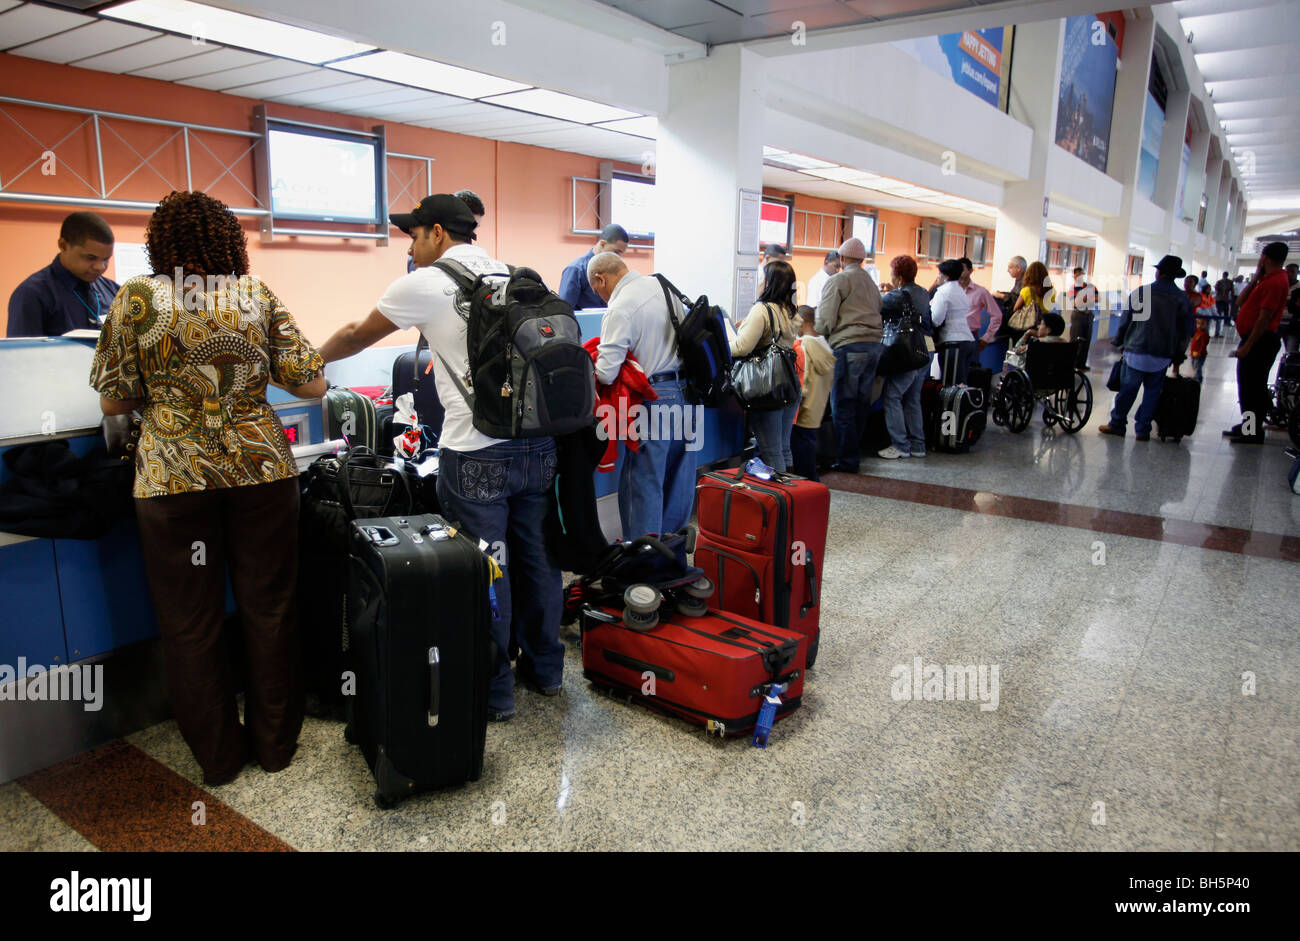 Airline passengers check in at Las Americas International Airport in Santo Domingo, Dominican Republic - Stock Image